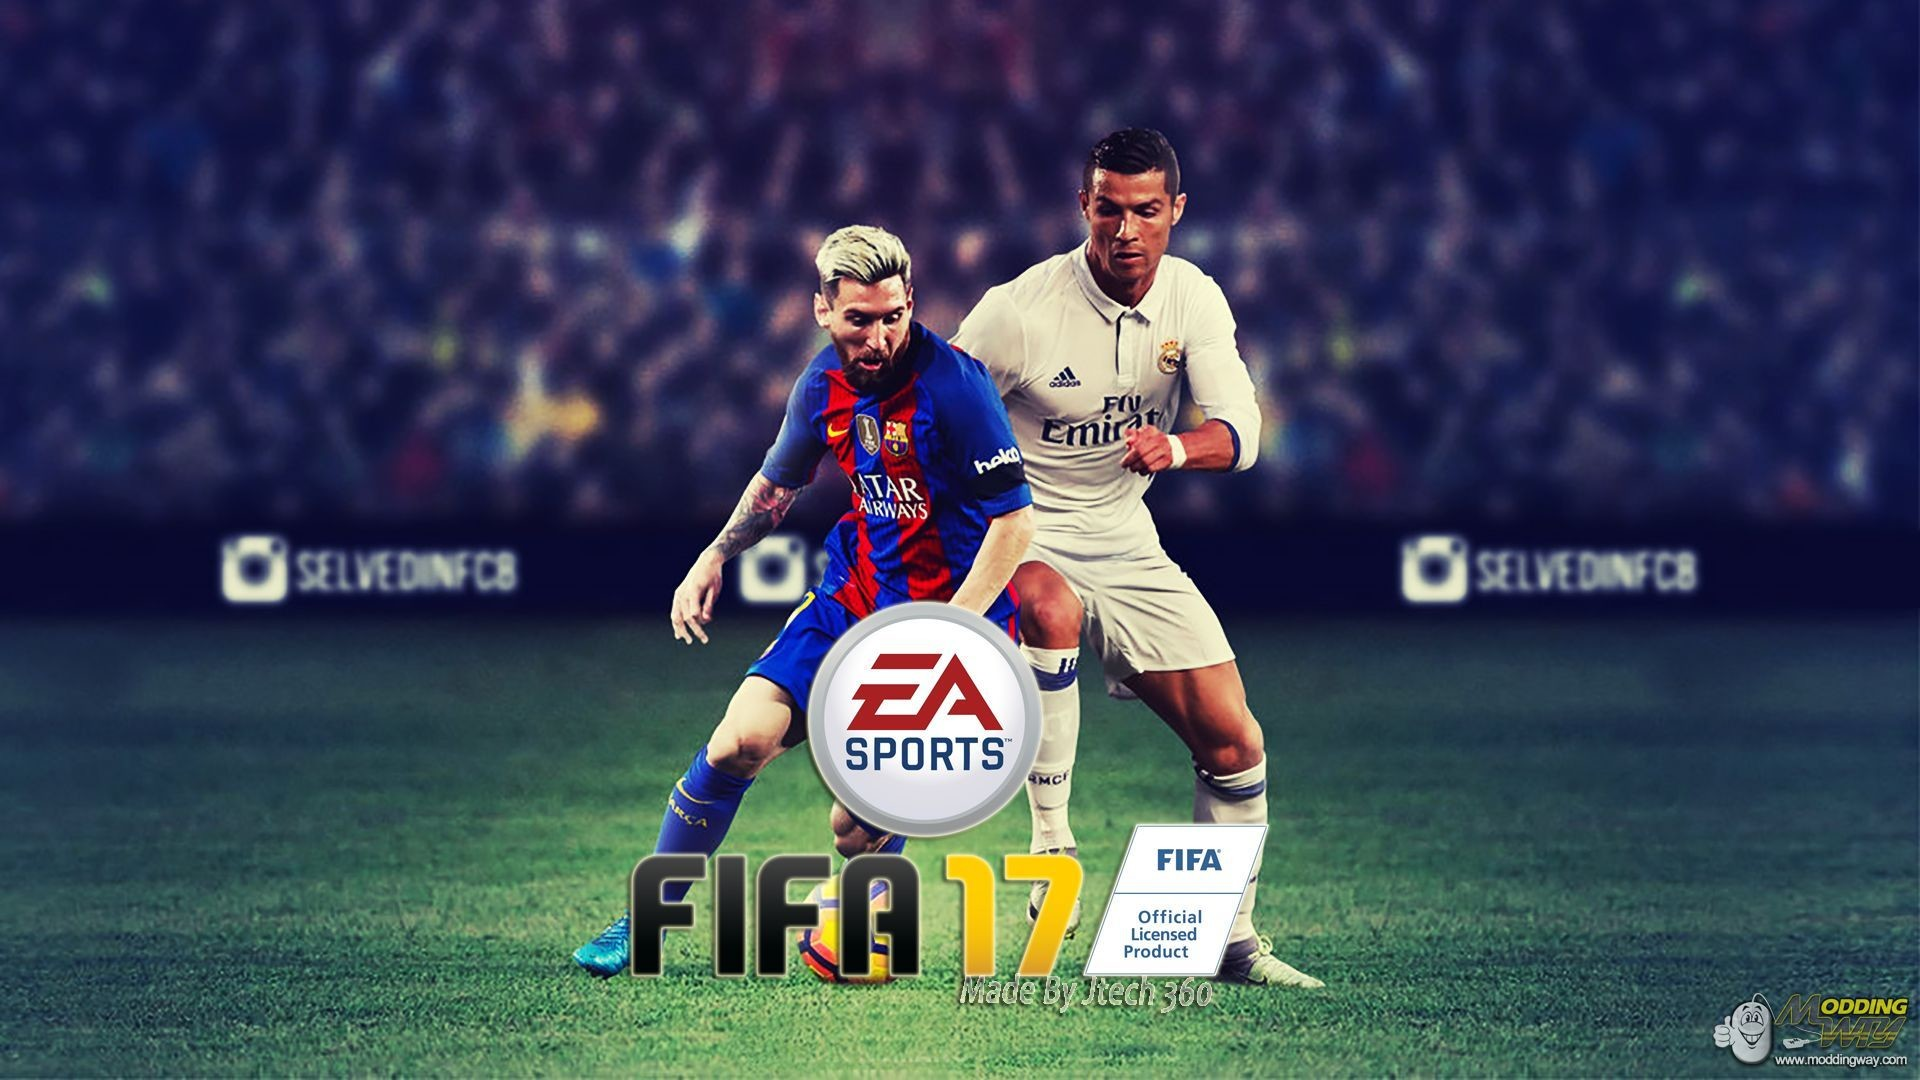 Fifa 17 Wallpapers (84+ pictures)